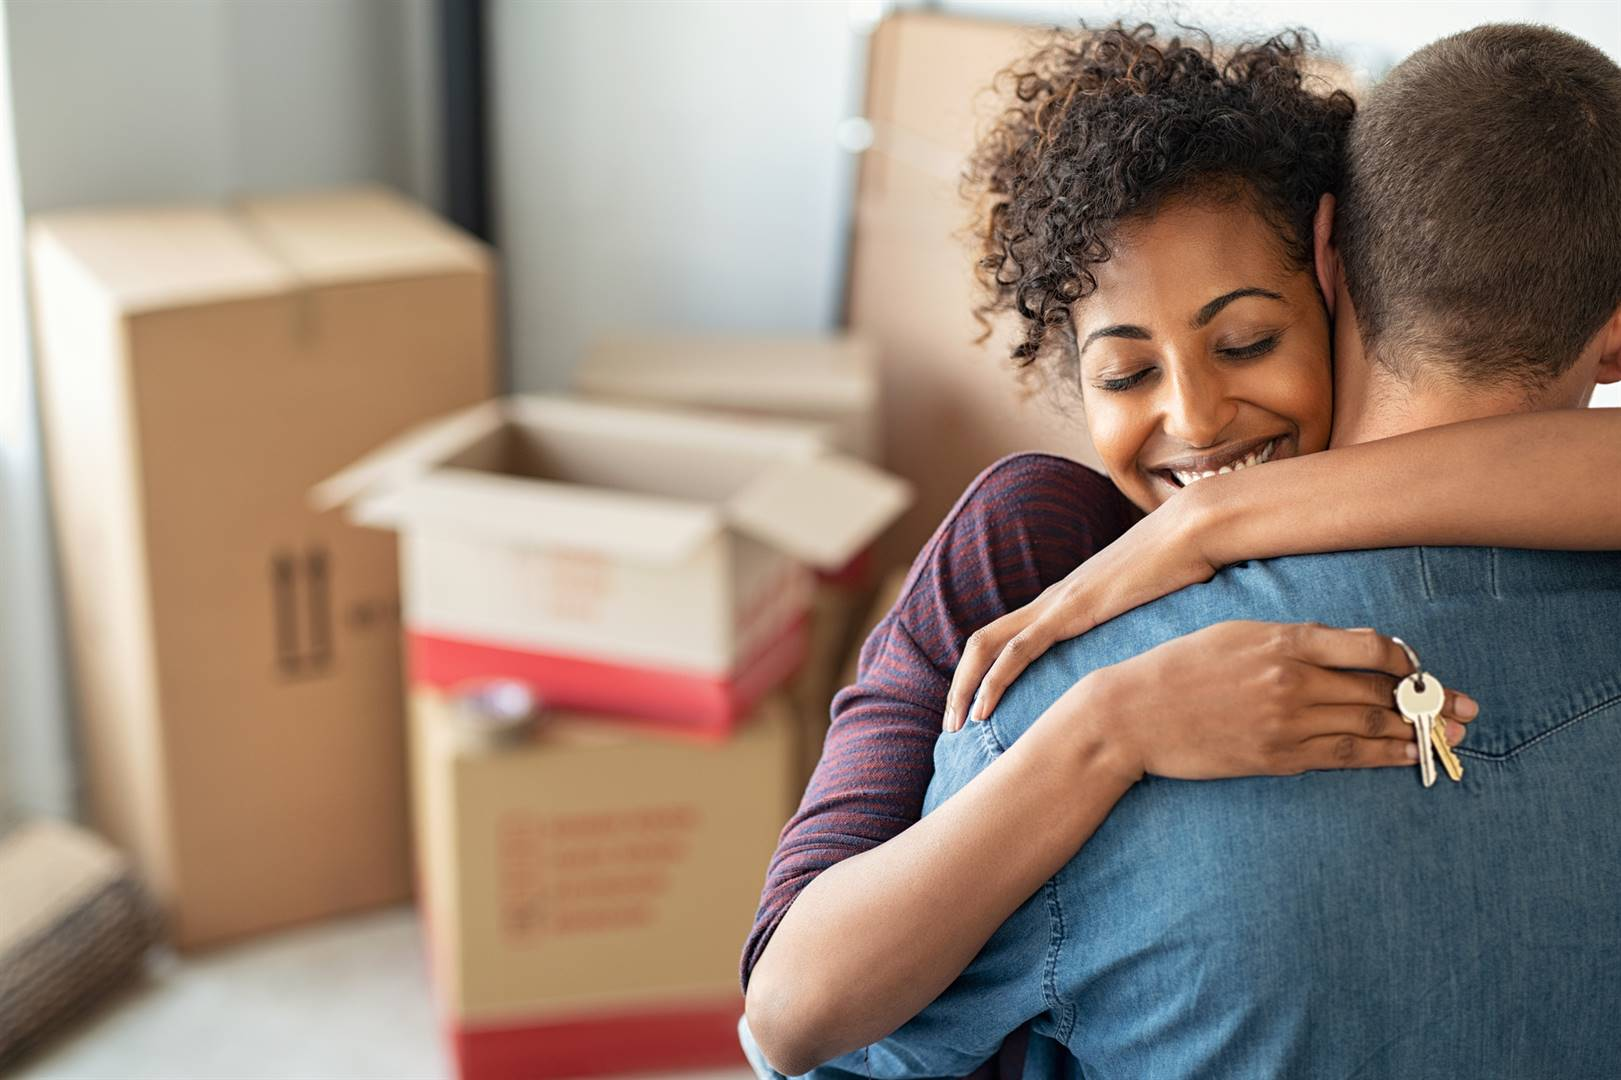 Owning your own home bring much joy, but buyers don't always factor in the numerous costs associated with it. Picture: iStock/Gallo Images